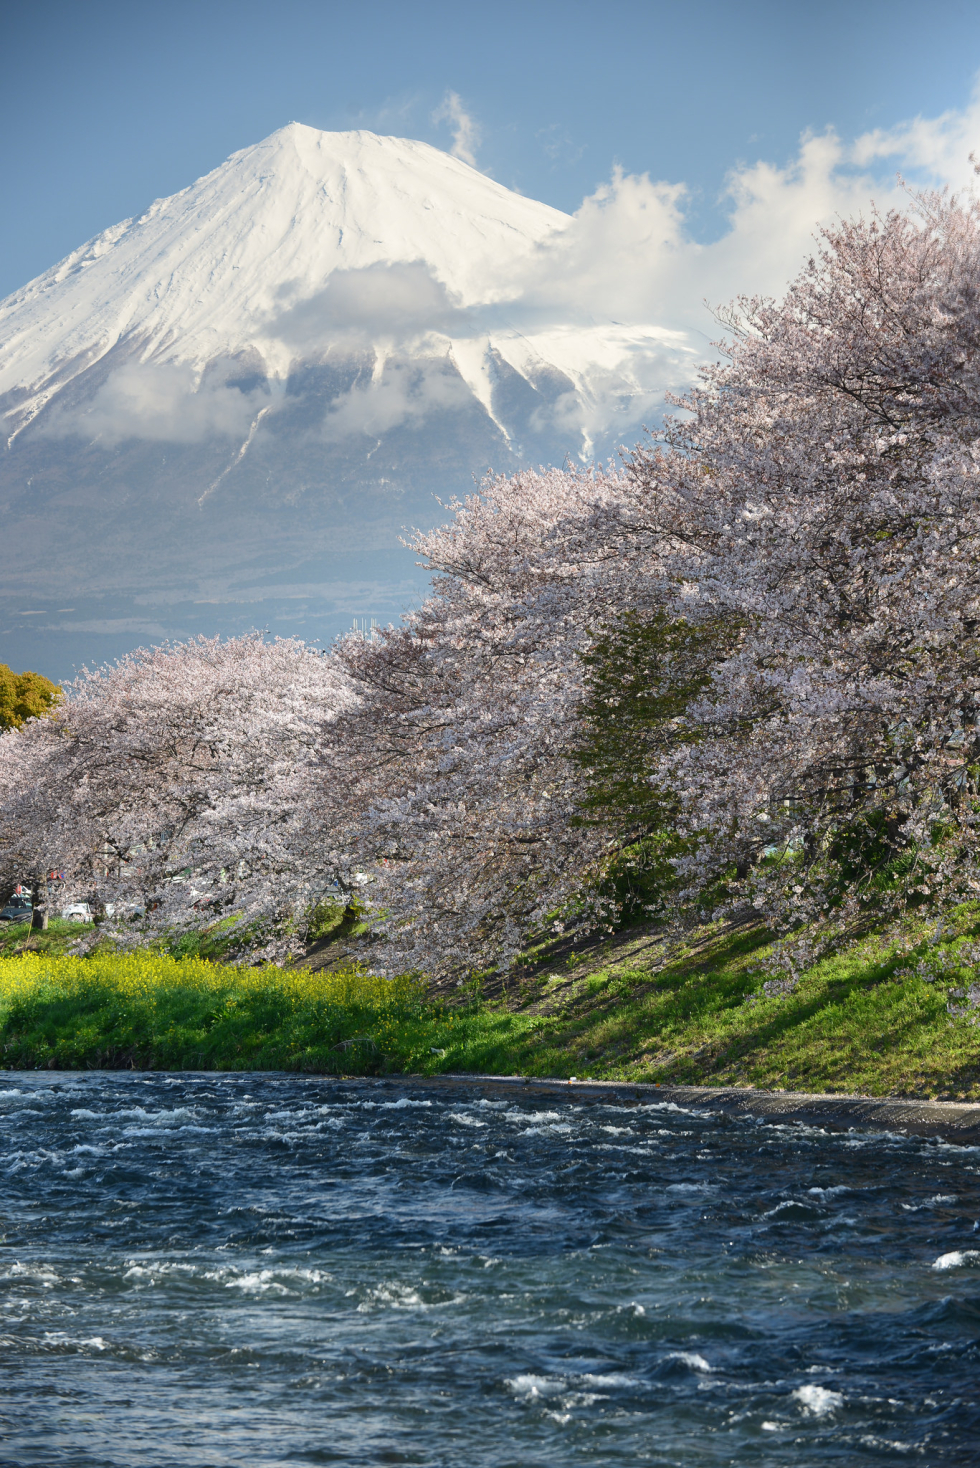 Cherry blossoms and Mount Fuji, Japan